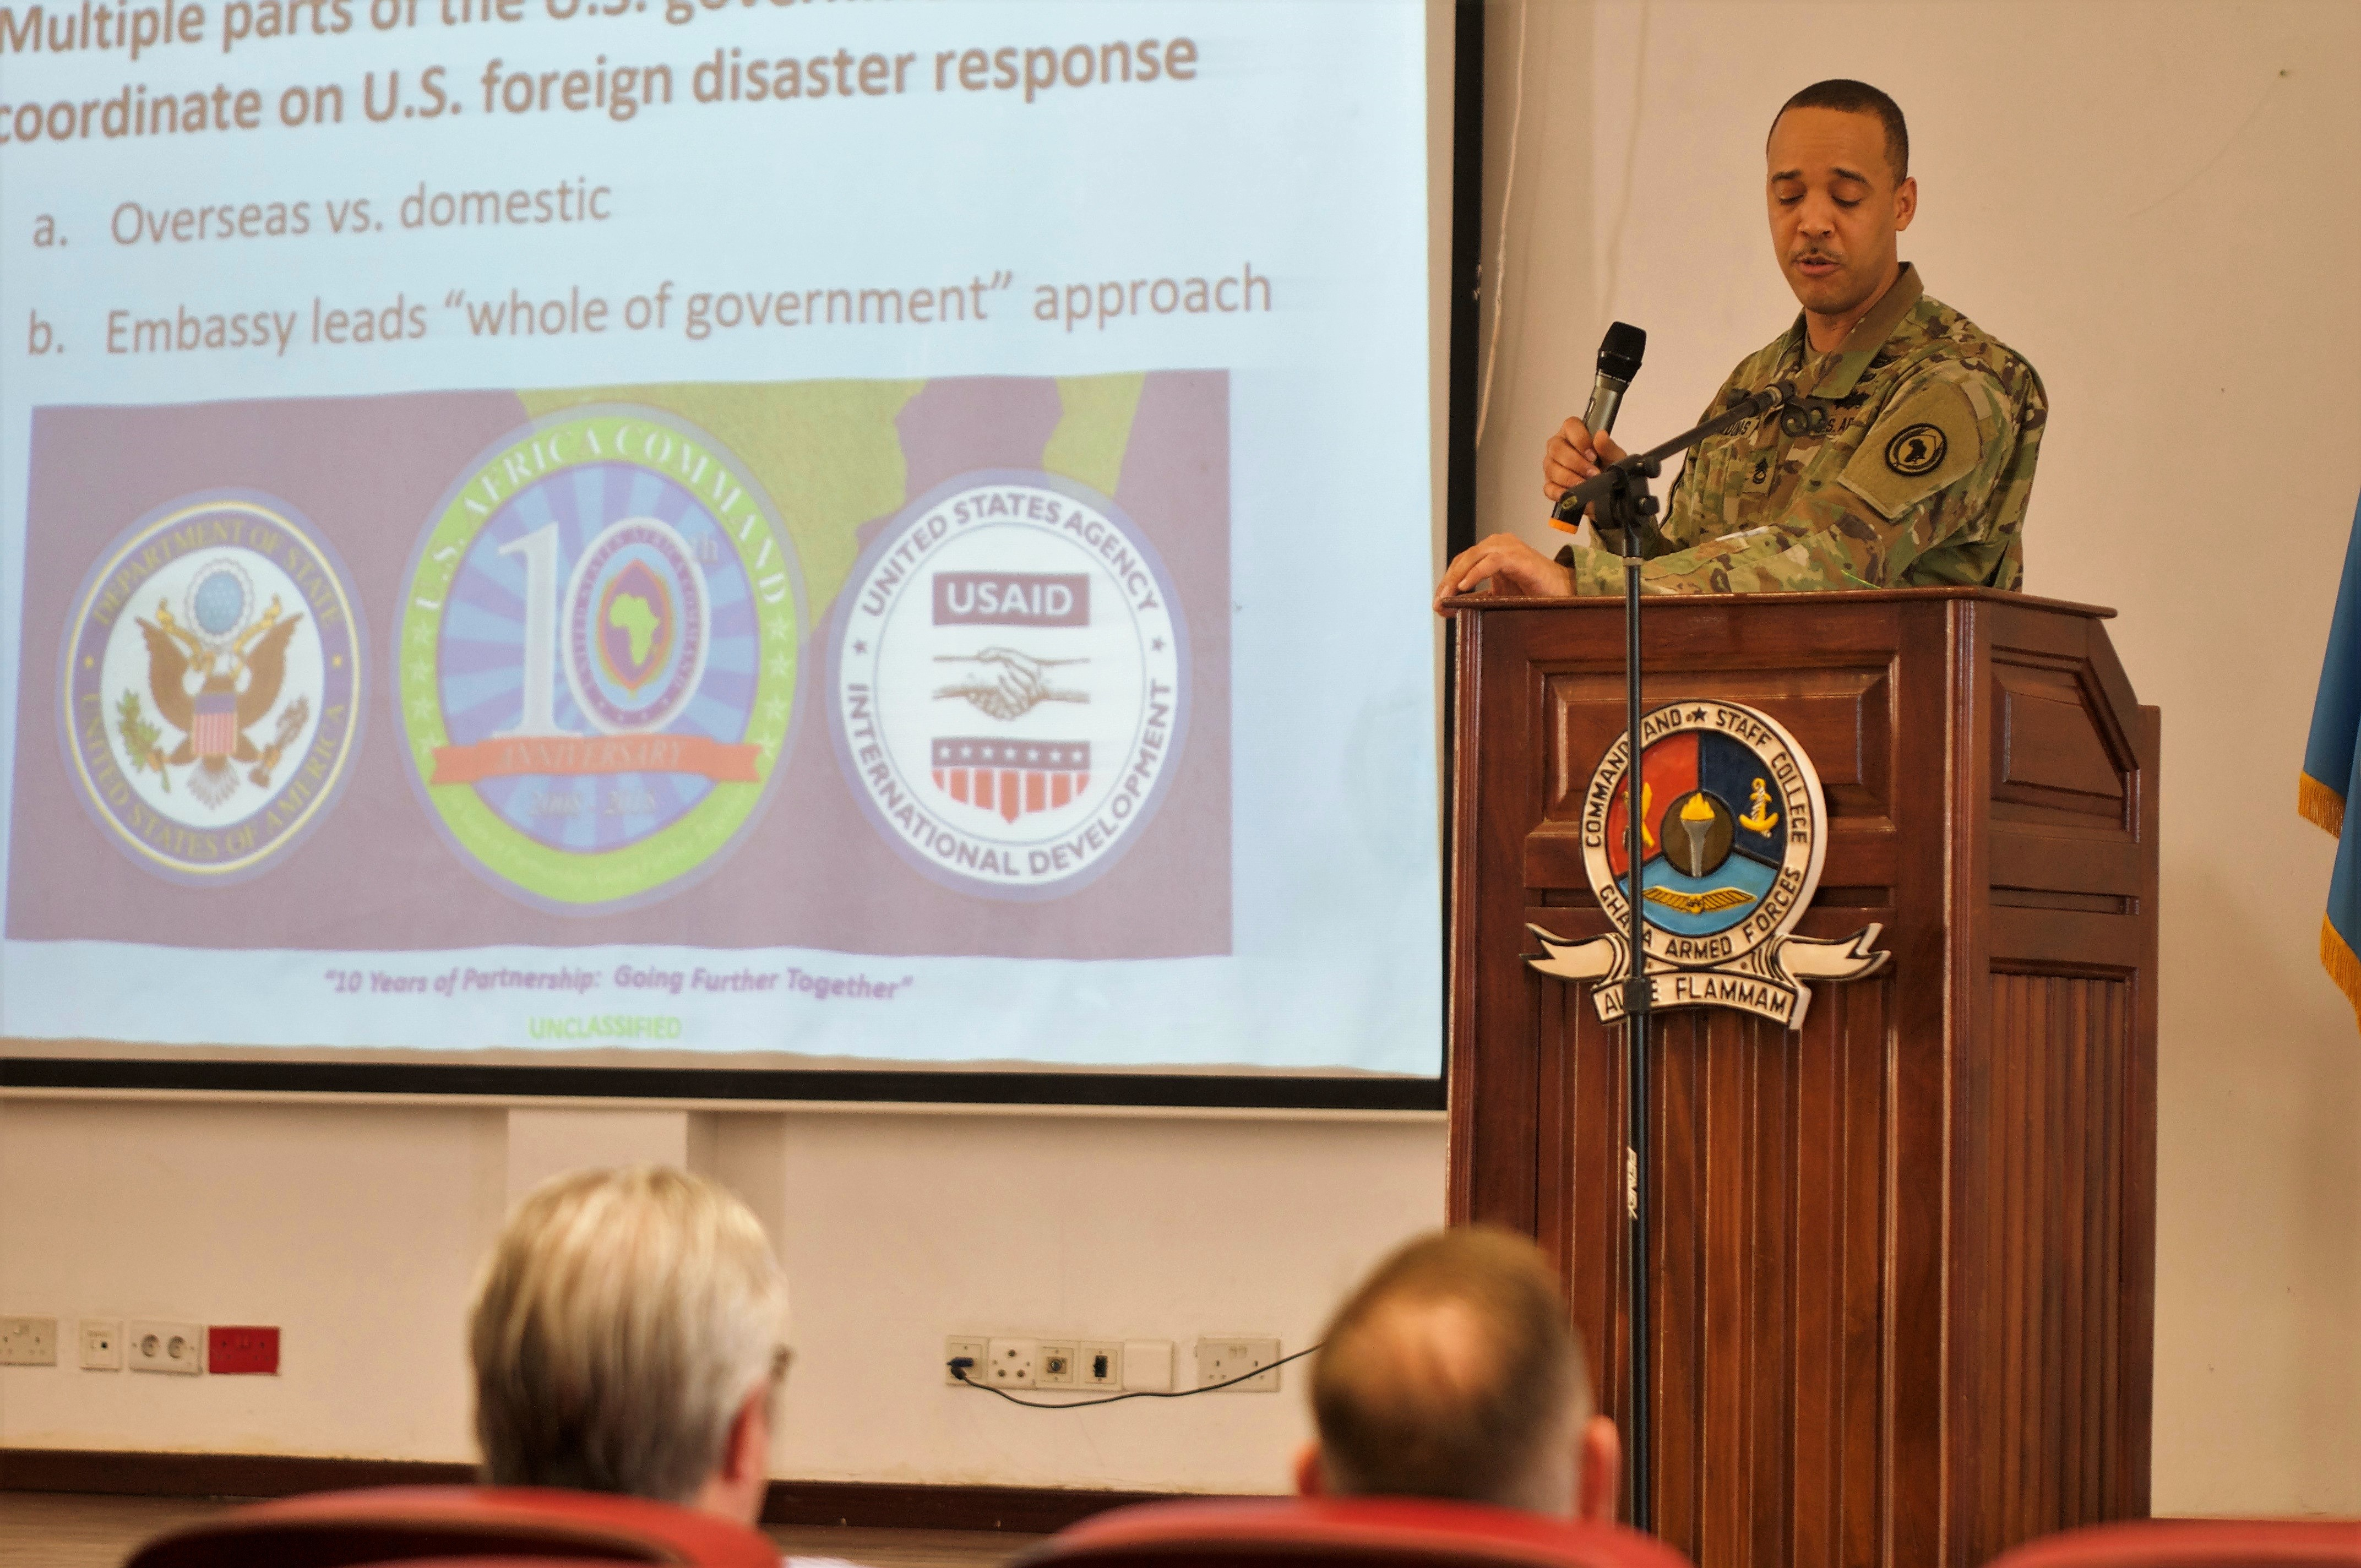 U.S. Africa Command J5 Civil Affairs NCOIC Sgt. First Class S Rahsann Soumas speaks on civilian-military coordination. AFRICOM and Ghana's National Disaster Management Organization (NADMO) co-sponsored a natural disaster response forum in Accra.  The event brought together experts in disaster management from multiple organizations in Ghana and the U.S. and was conducted at the Ghana Armed Forces Command and Staff College, March 12-15, 2018. (U.S. AFRICOM photo)